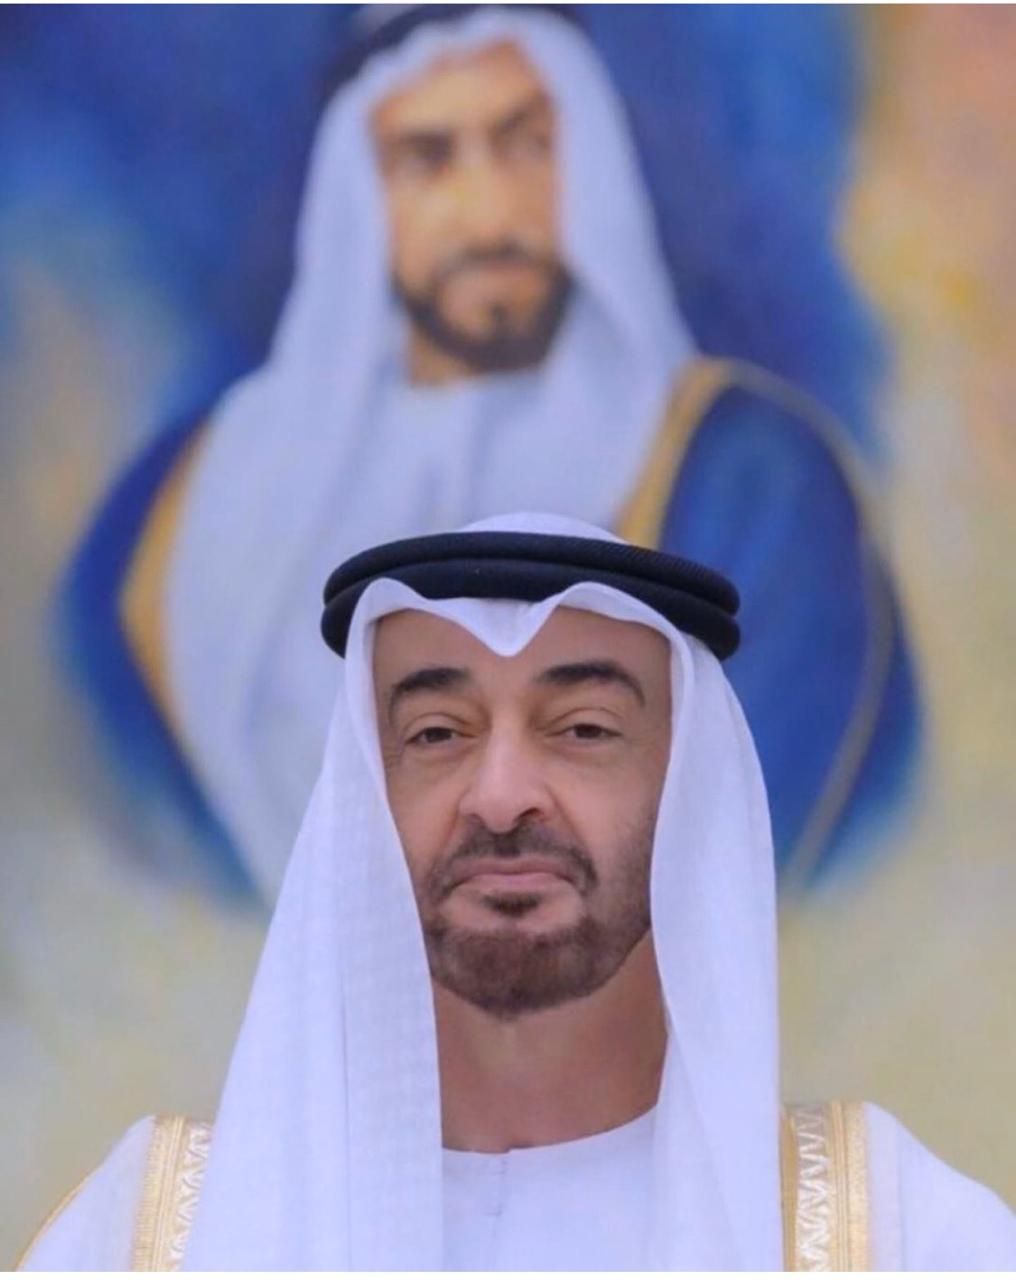 Mohamed bin Zayed orders free COVID-19 tests for UAE citizens, domestic workers, other community segments